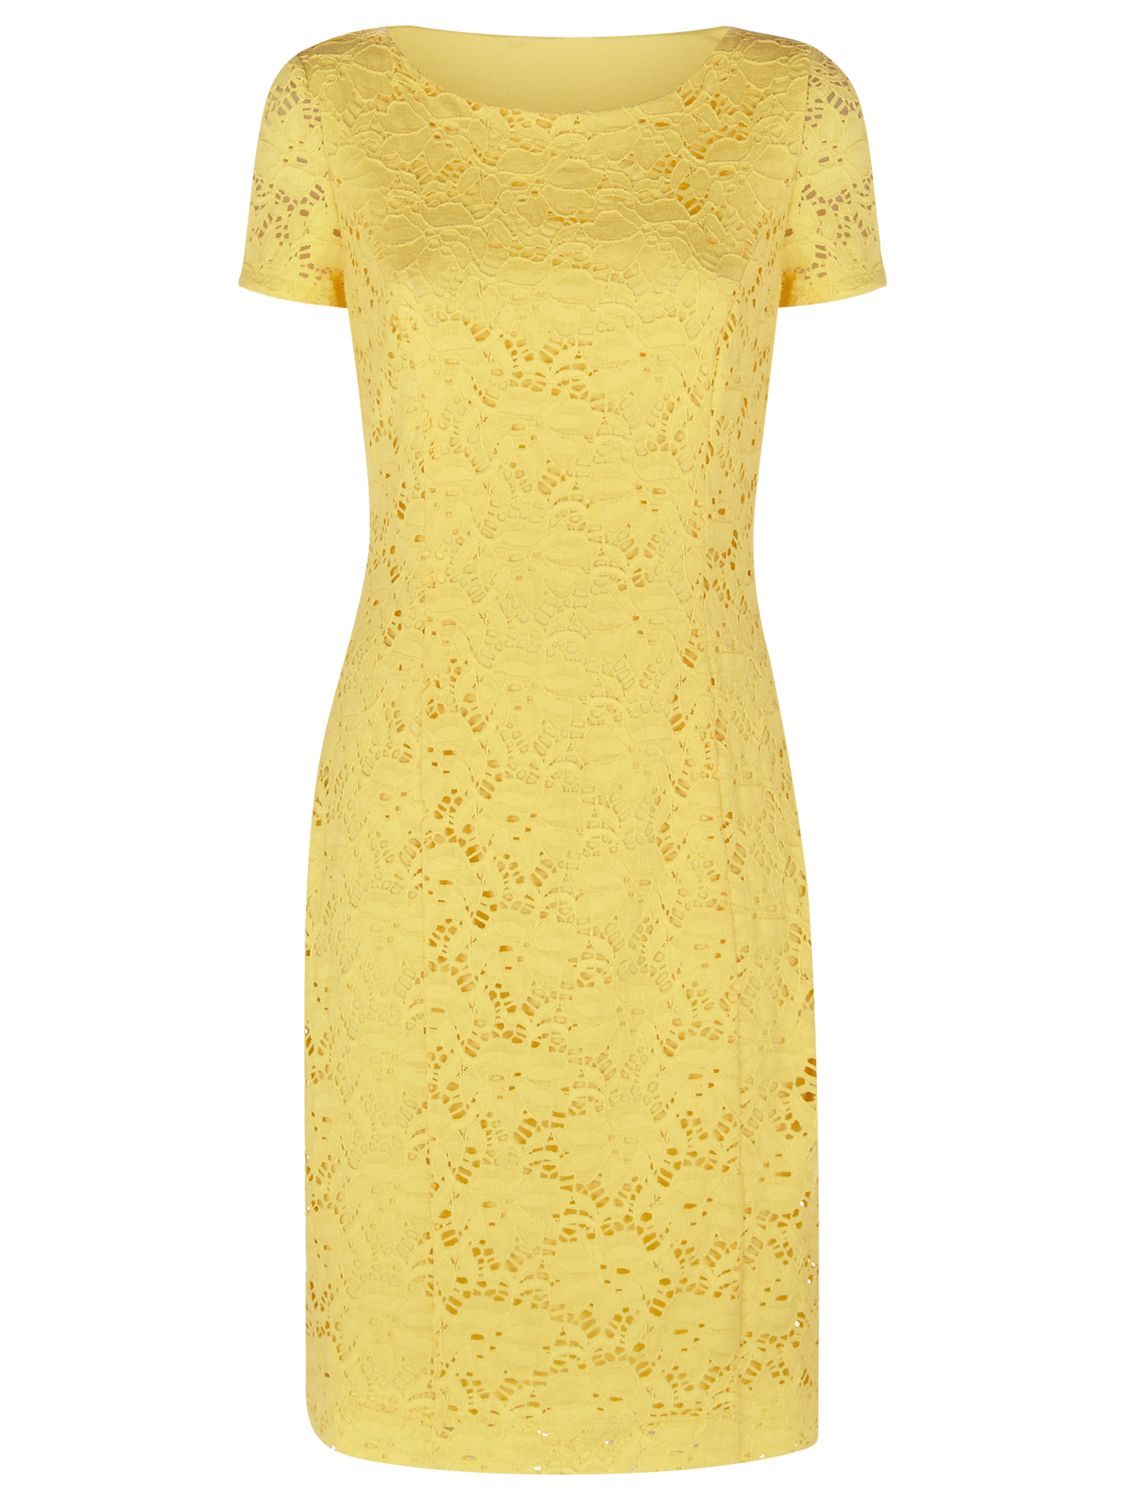 precis petite lace dress bright yellow, precis, petite, lace, dress, bright, yellow, precis petite, 10|8|6|14|12|18|16, women, womens dresses, gifts, wedding, wedding clothing, female guests, 1931594